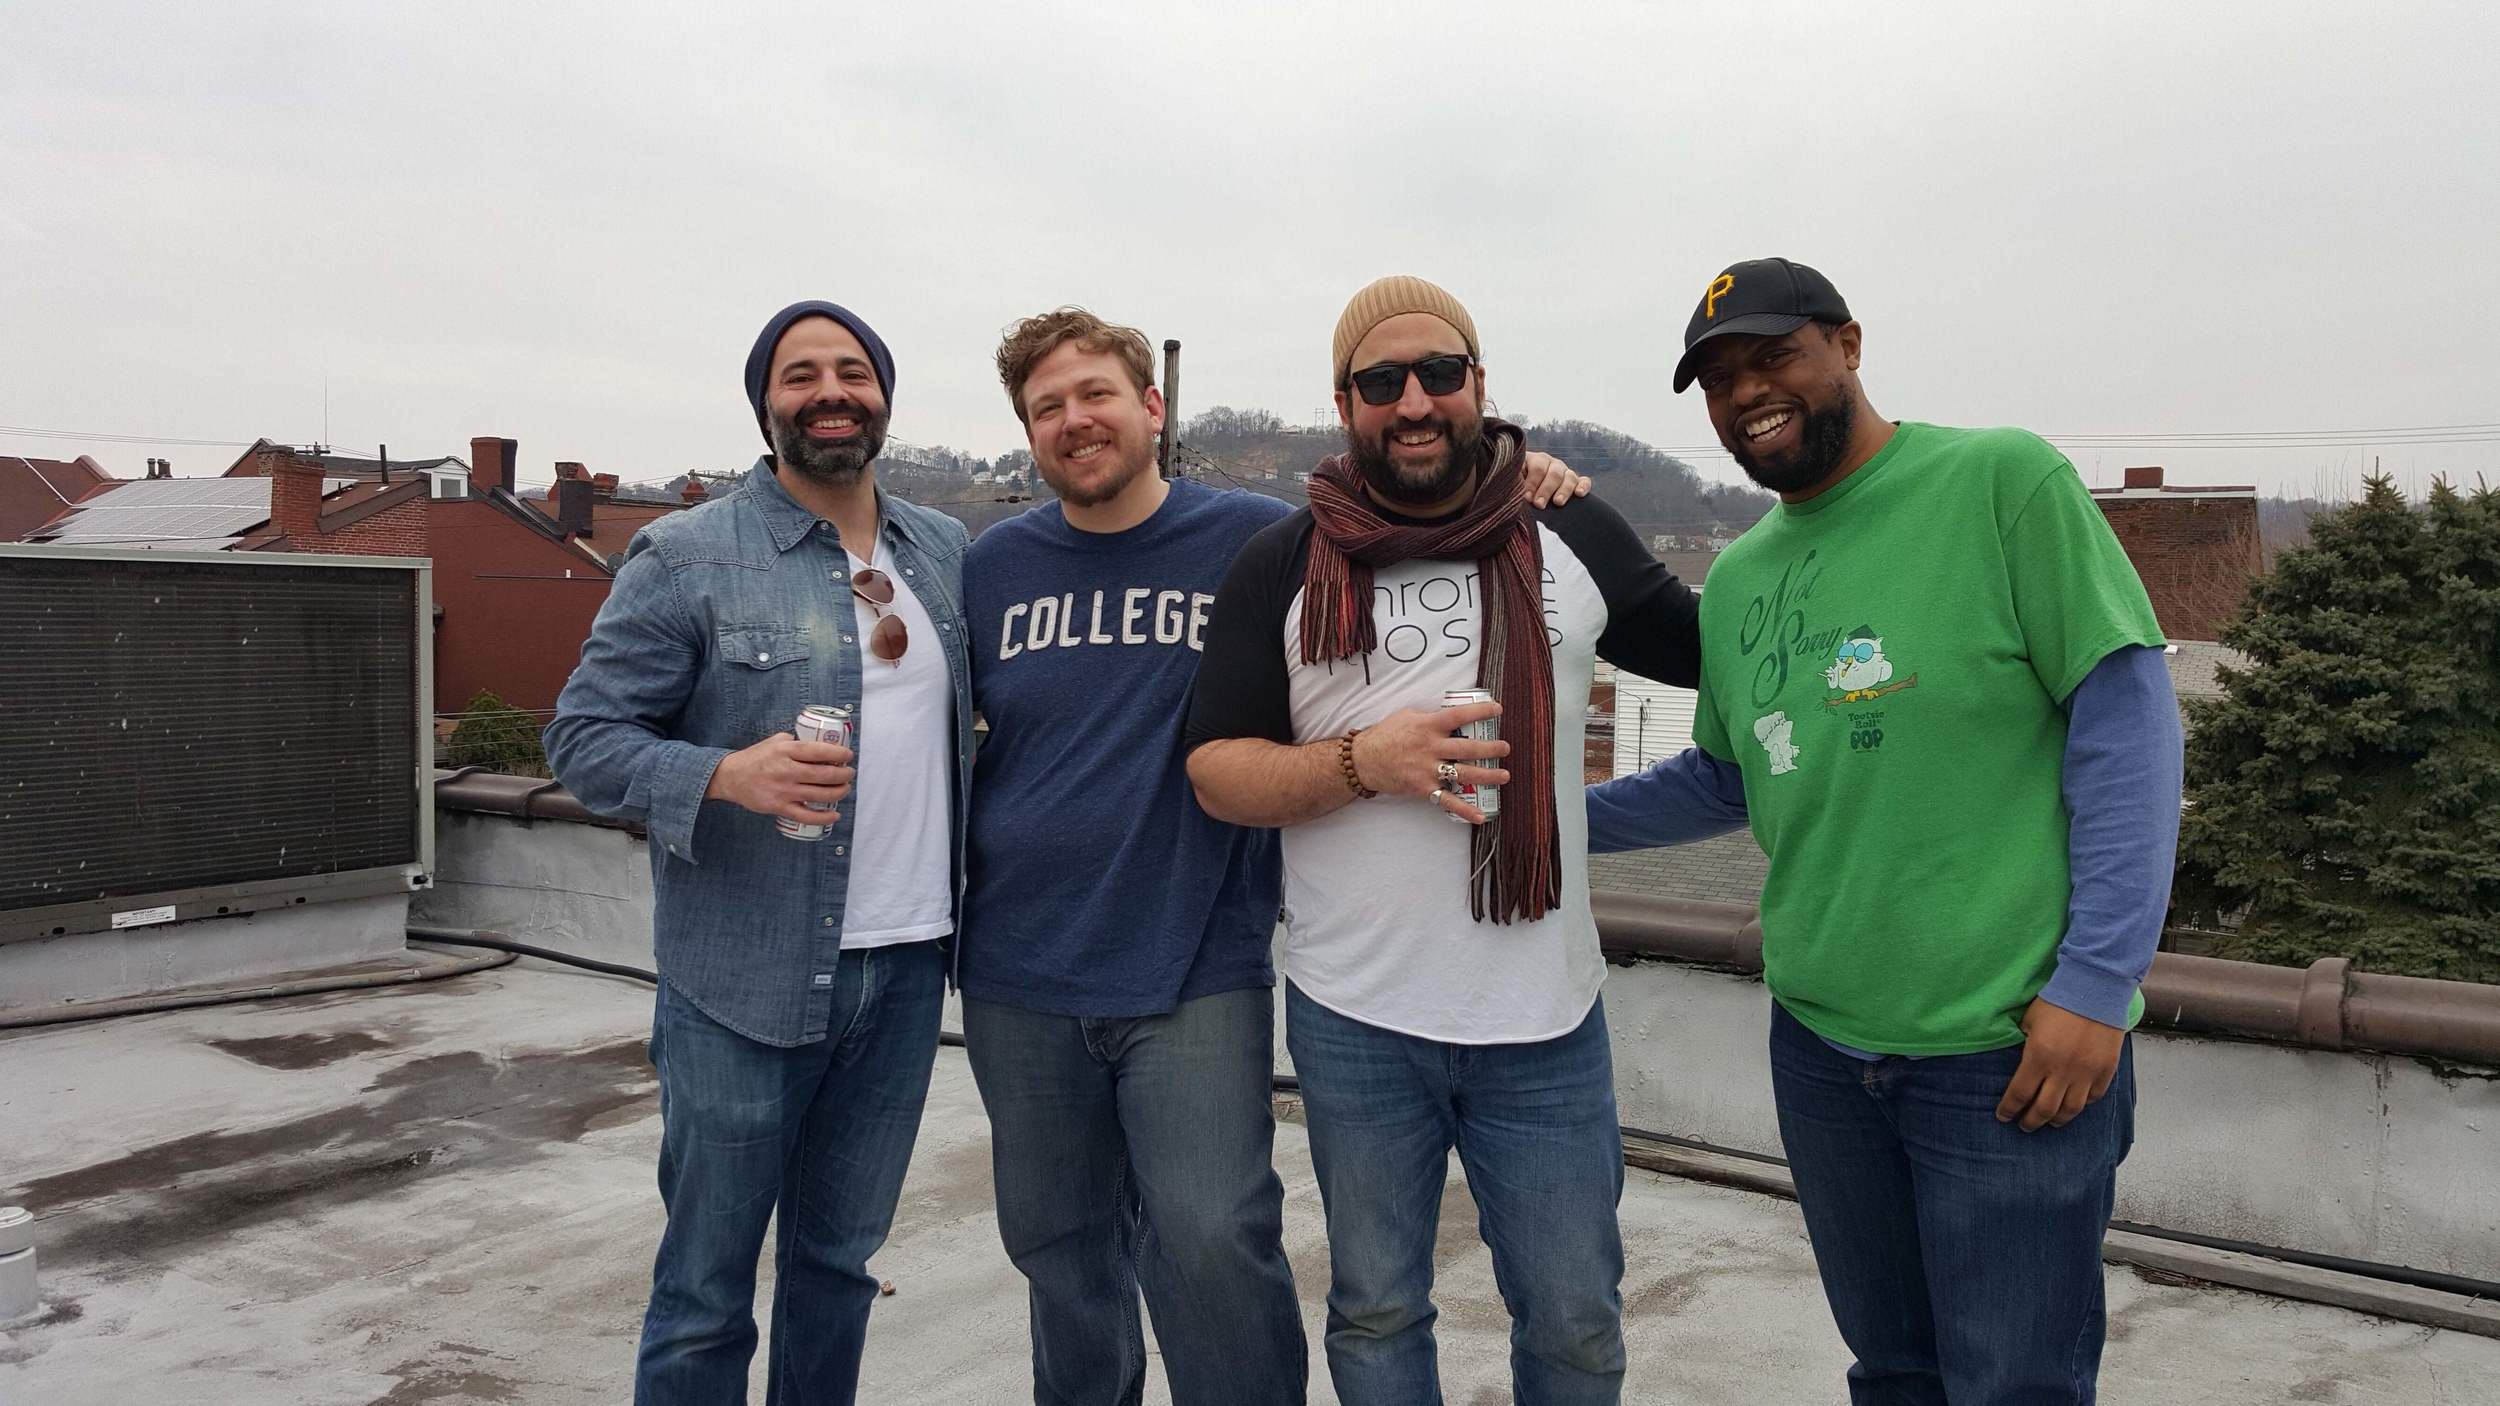 Joey, Garrett, TJ, and Clarence on the roof of the former Sky-lounge.